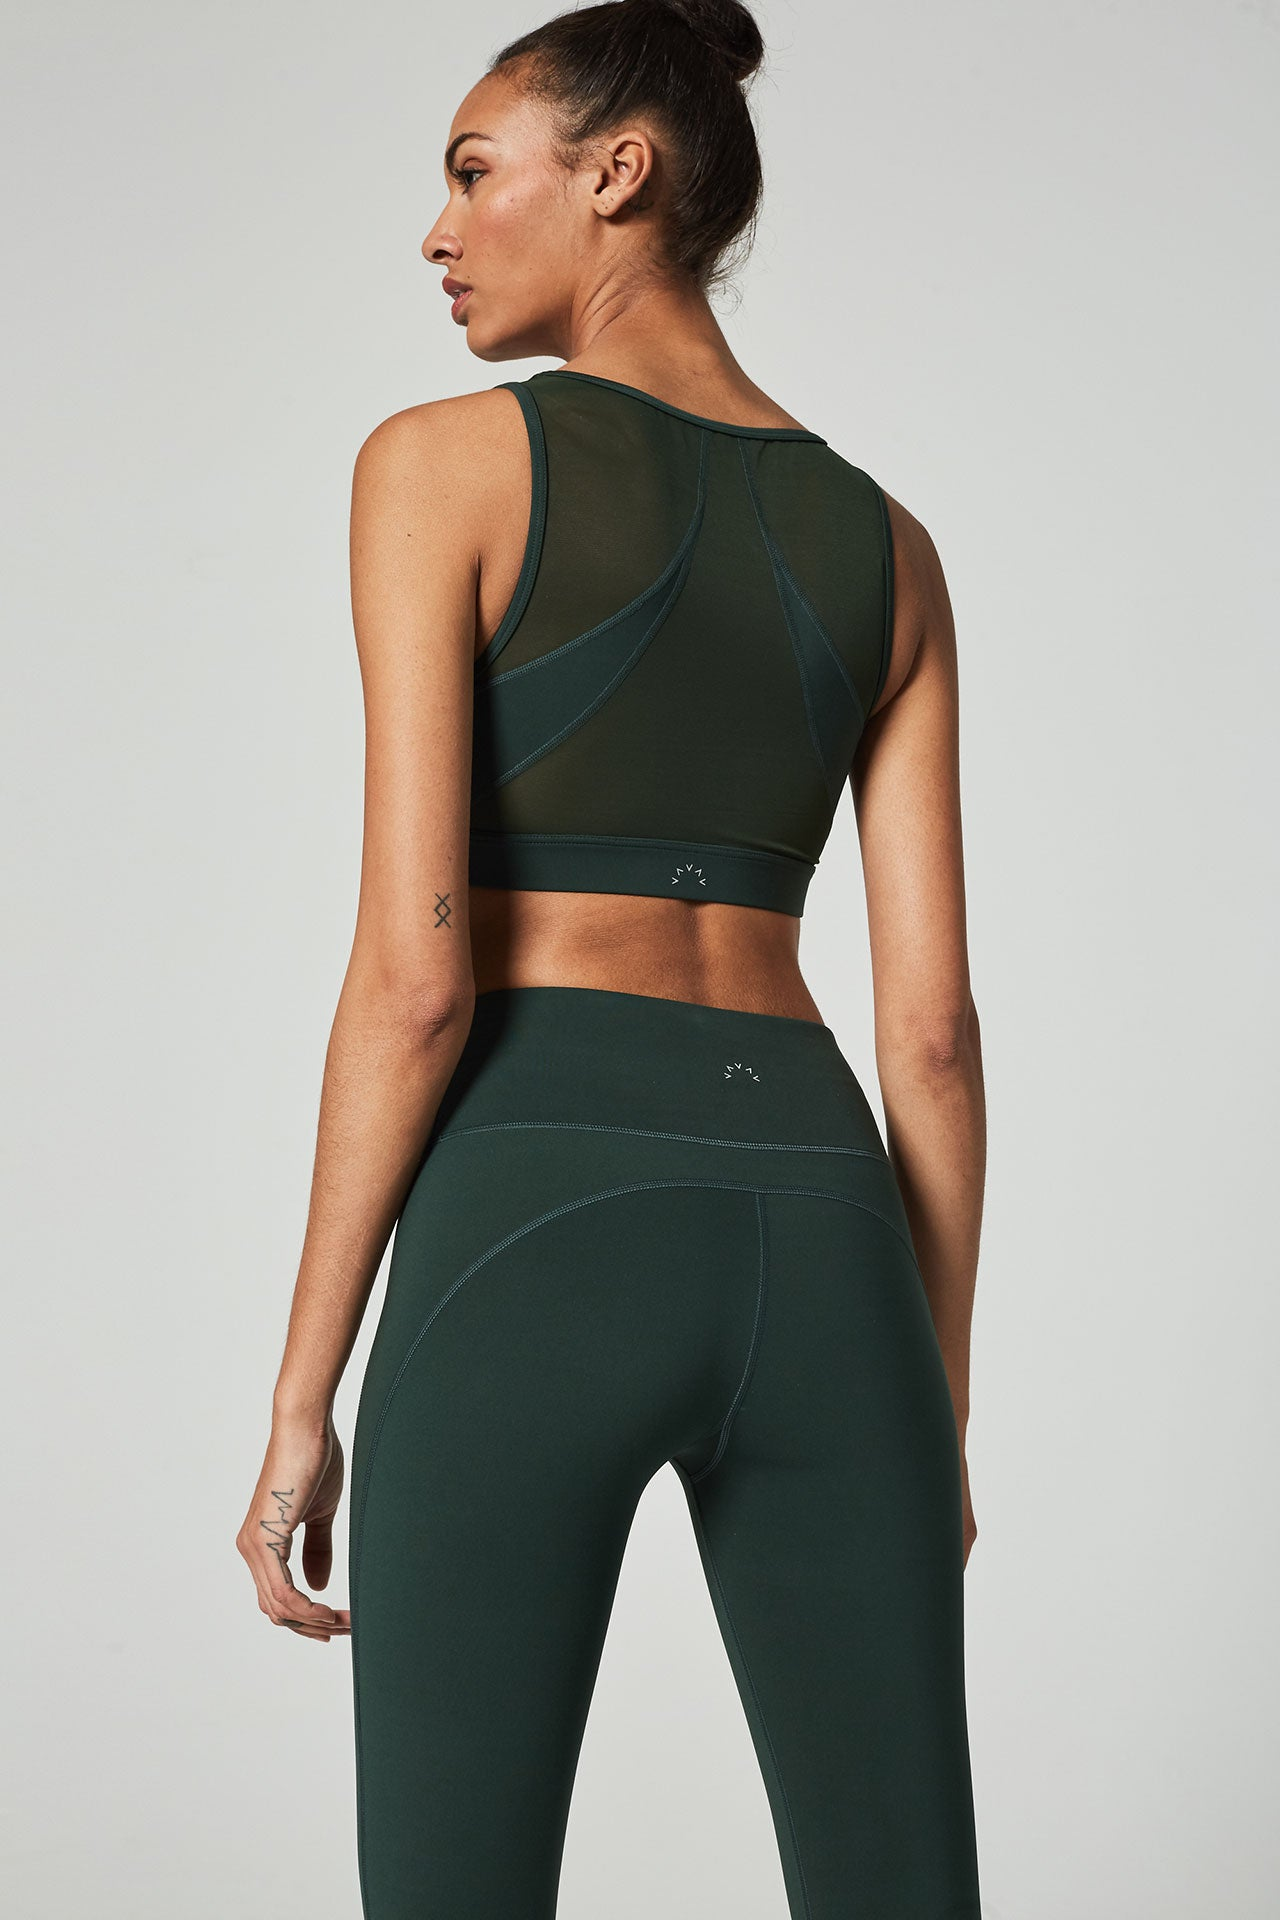 Varley Ainsley Tight - Green - Sculptique